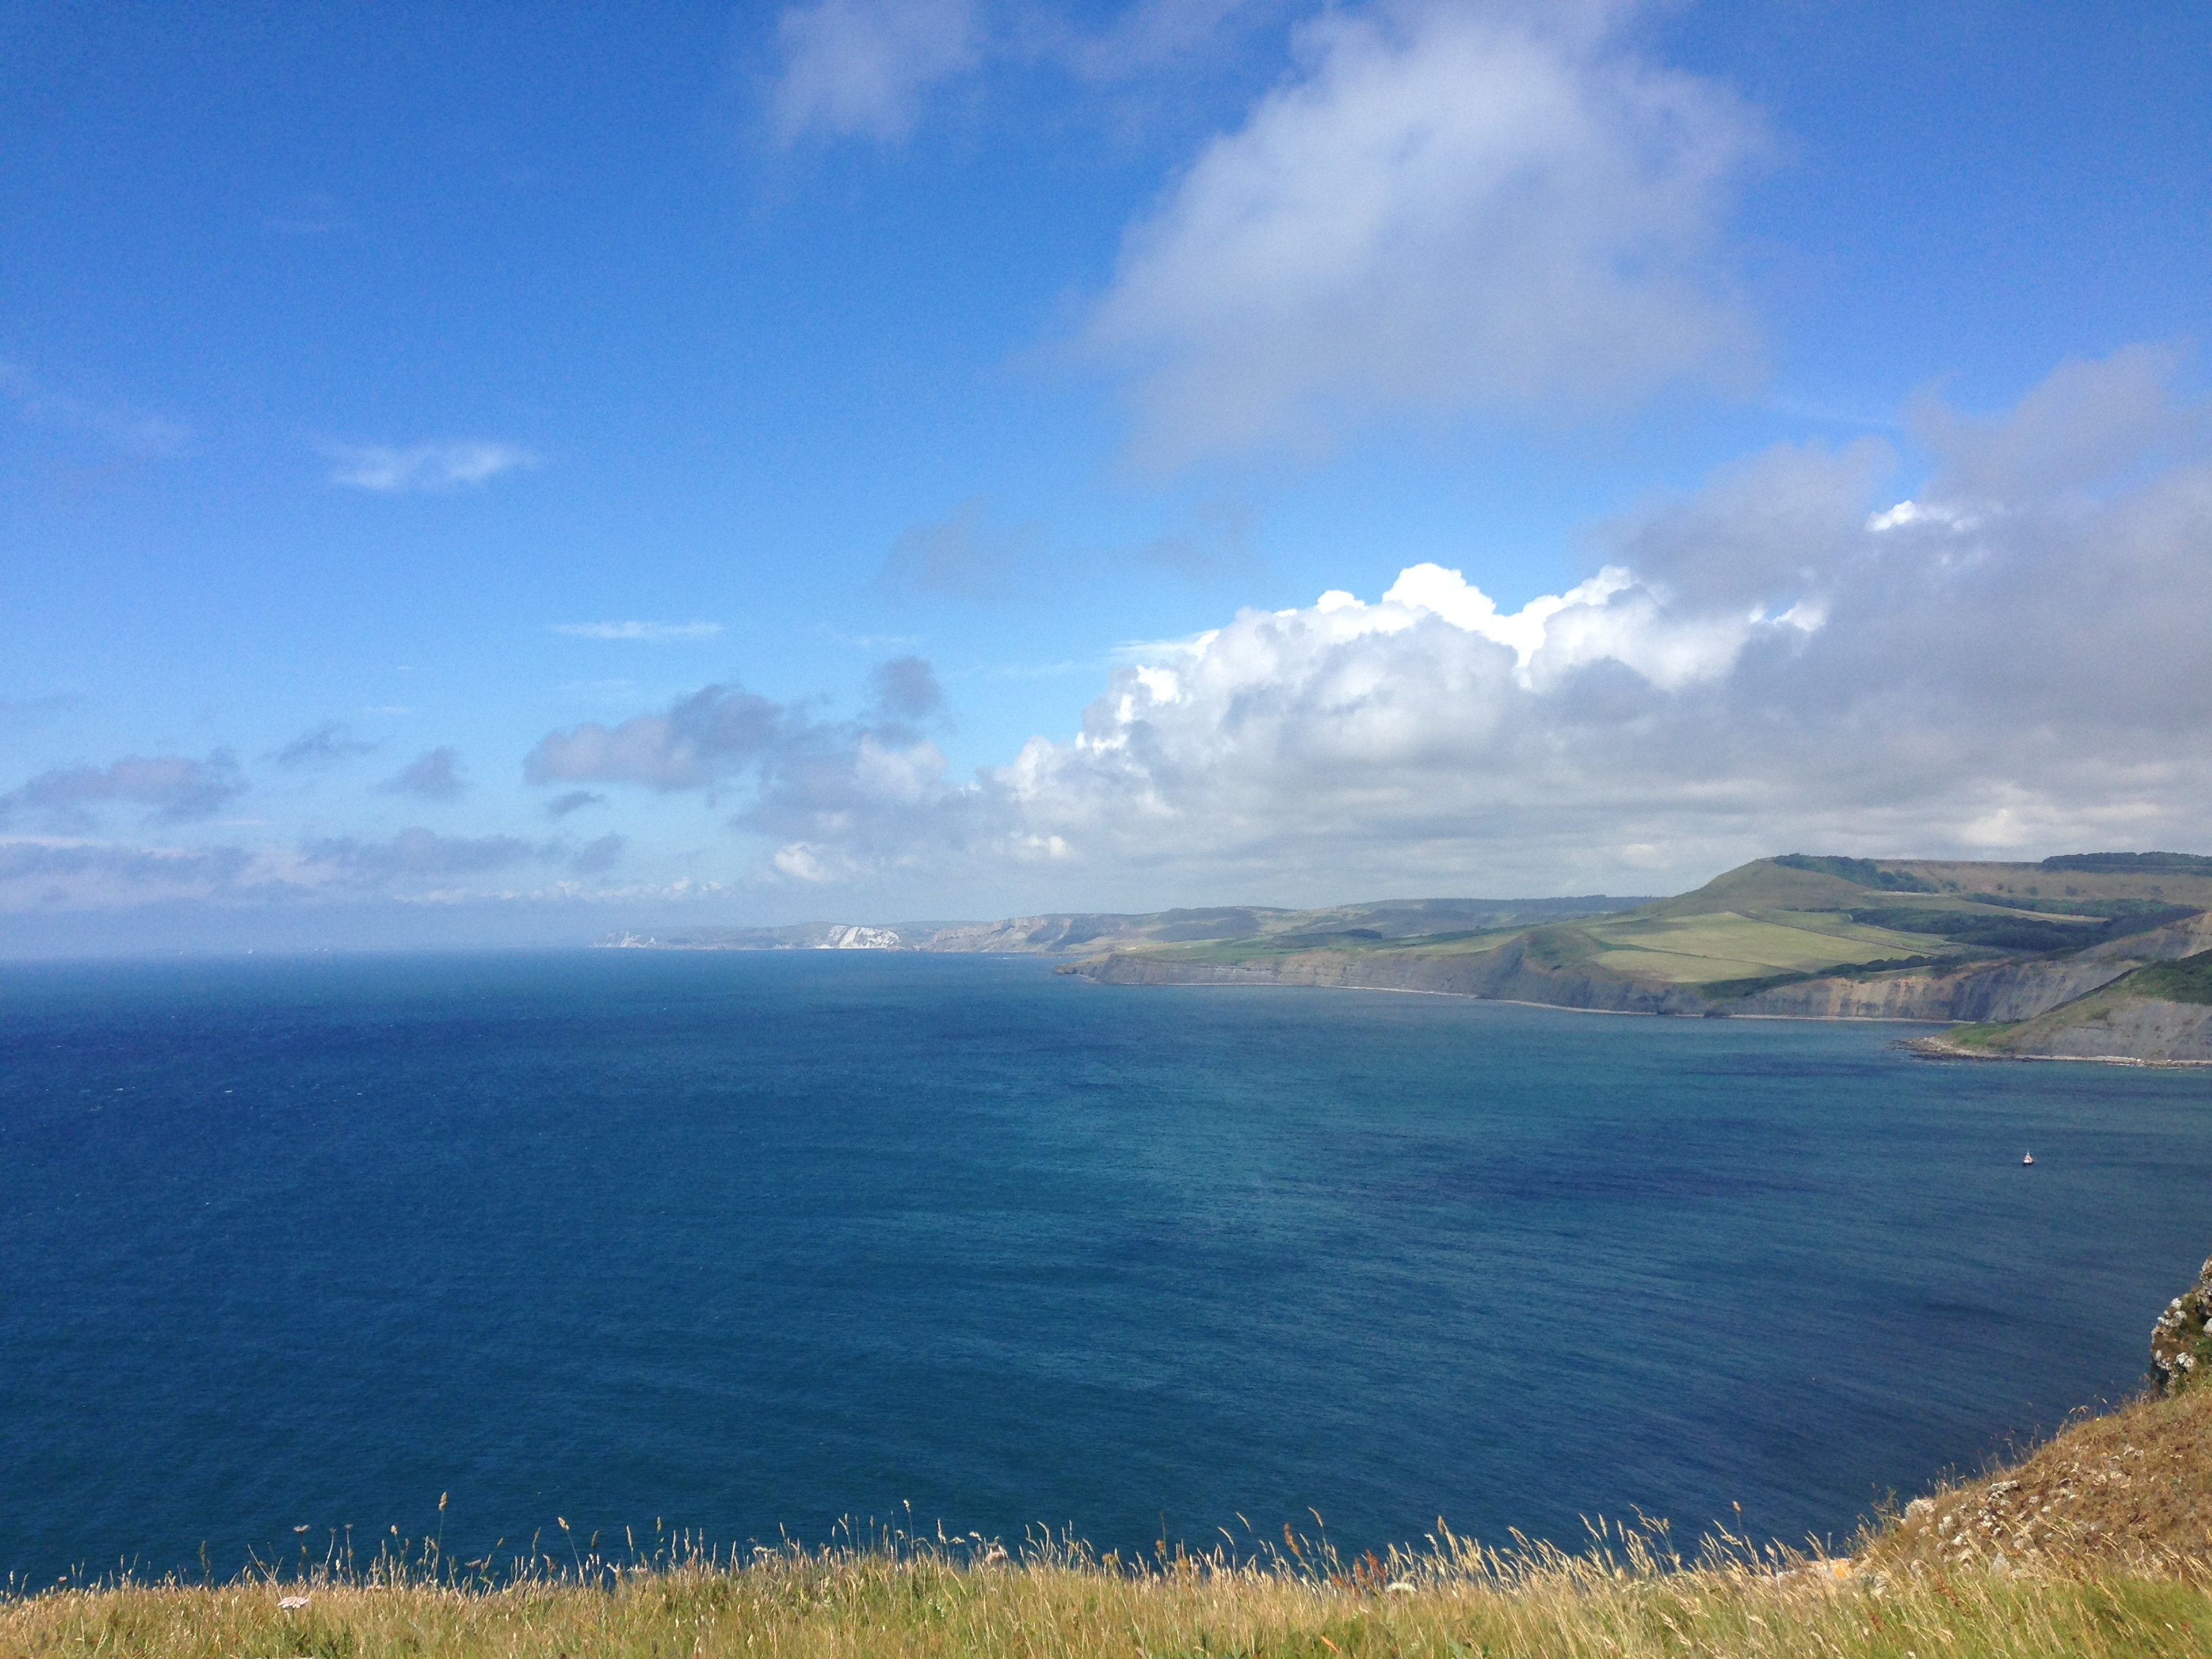 The sea is never far from us on the Isle of Purbeck!